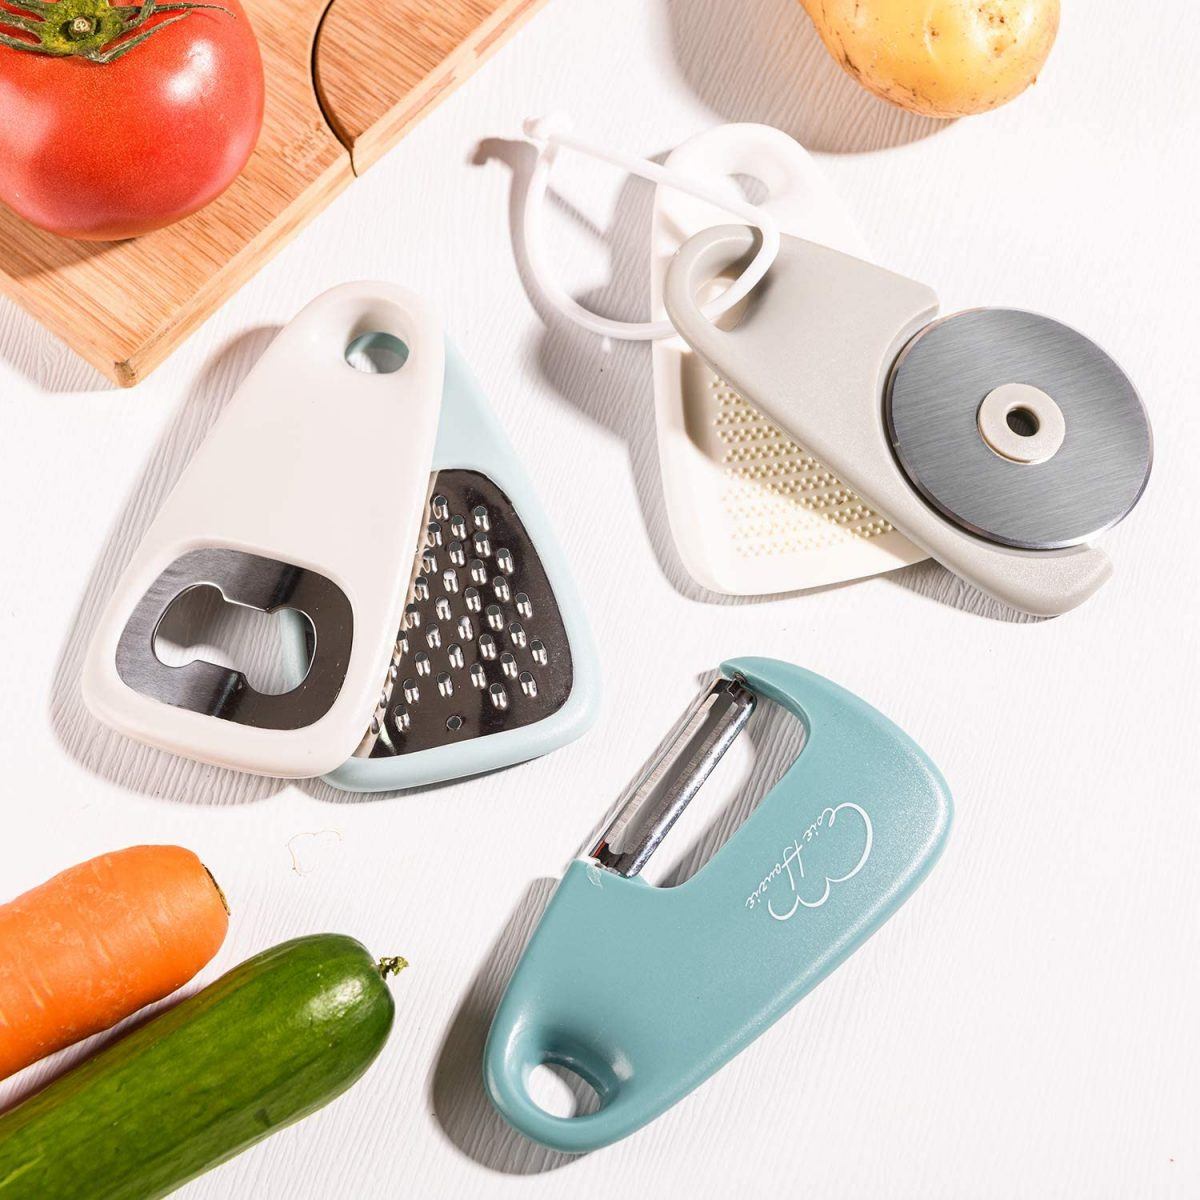 Kitchen Gadgets for your Skoolie